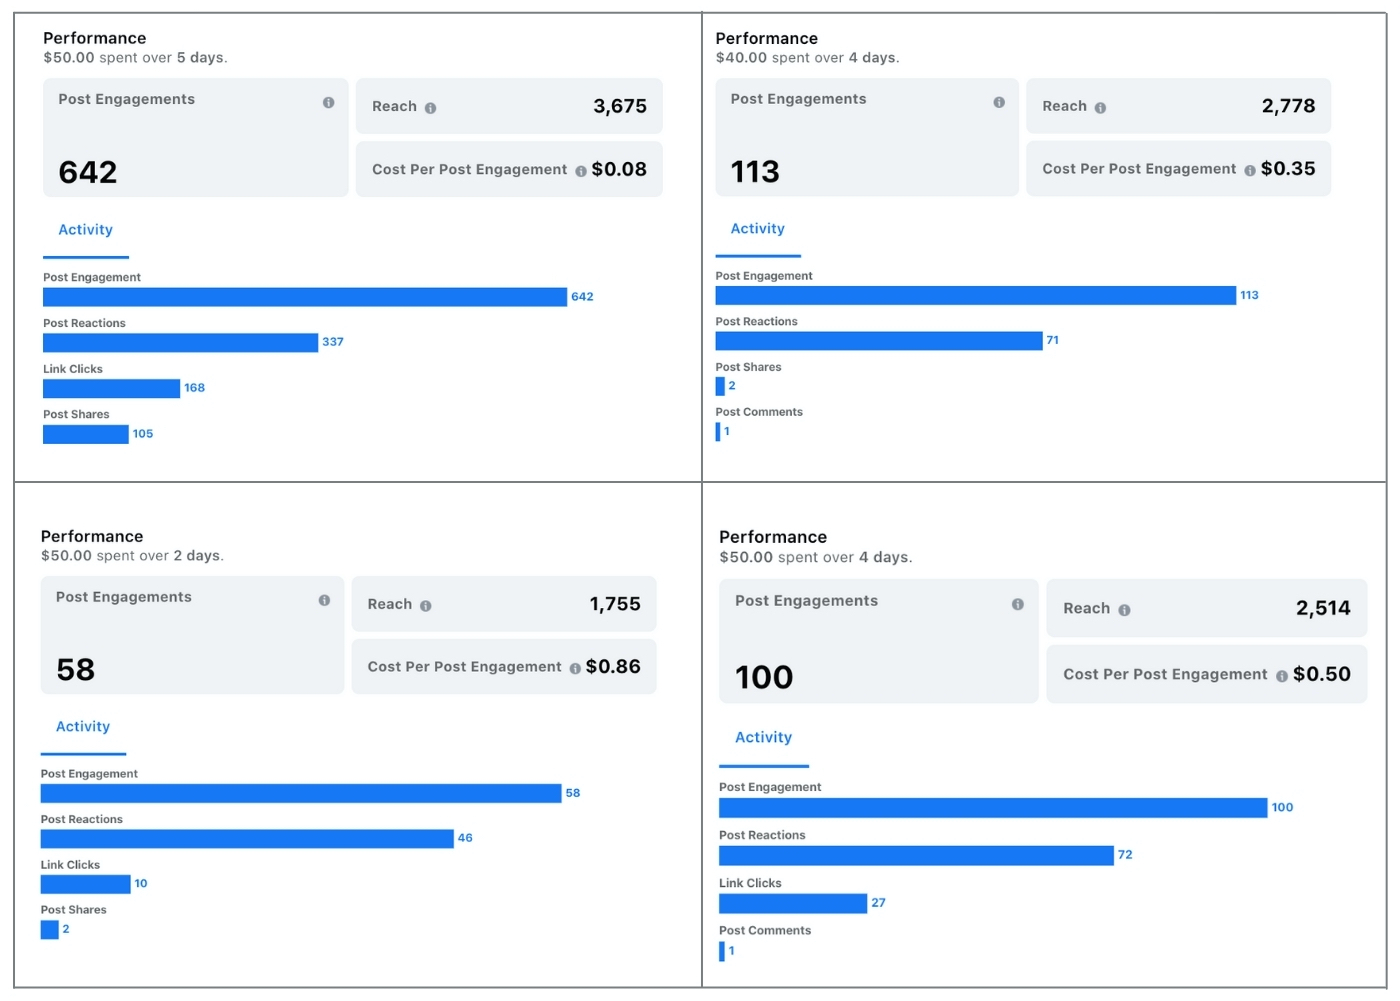 Facebook engagement performance showing monthly inexpensive costs of post engagement as low as $0.08 and $0.35.